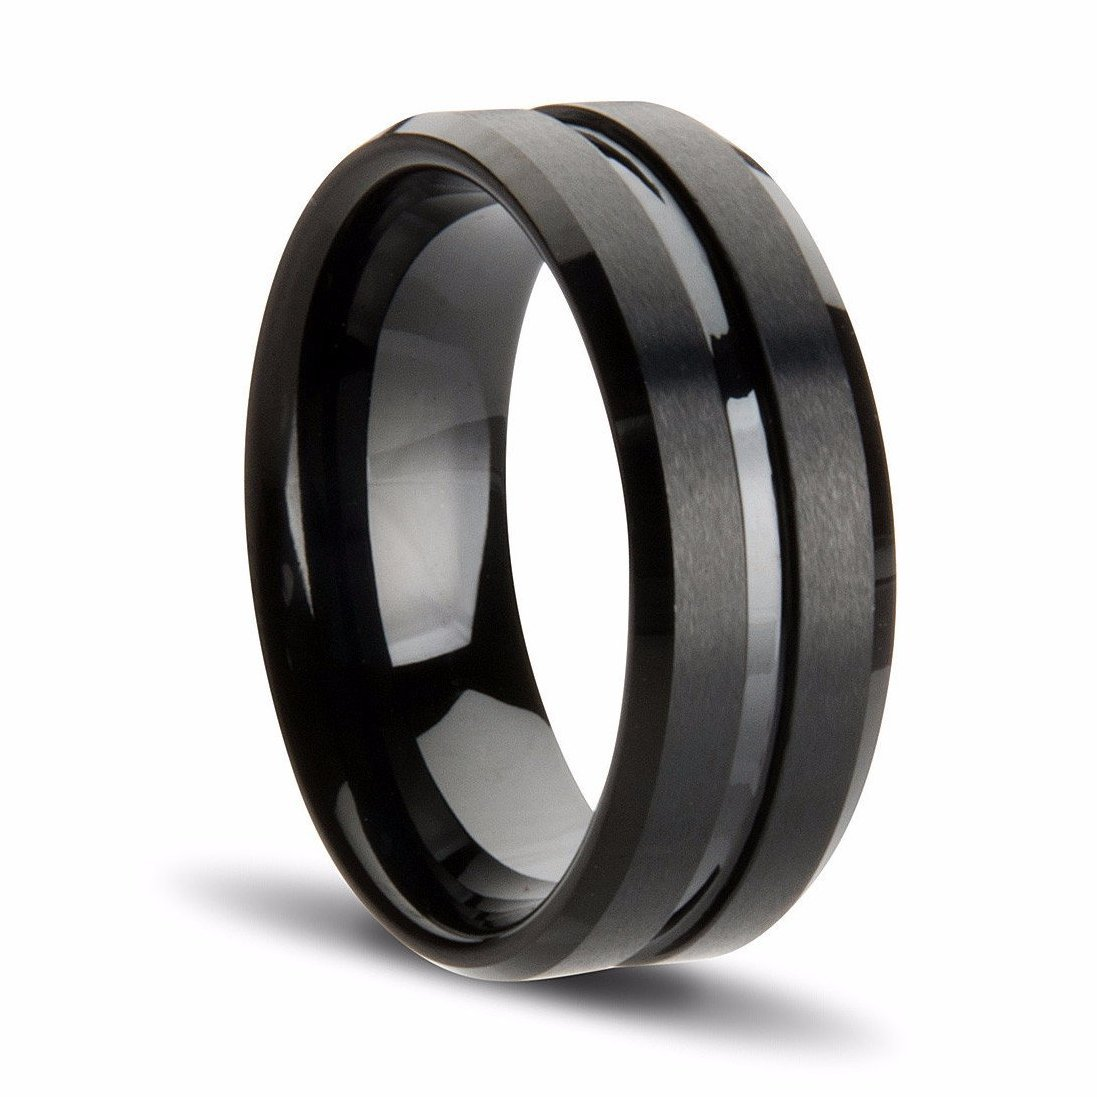 p rings tr carbon celtic knot tungsten ffj silver fiber dragon band black htm wedding infinity ring